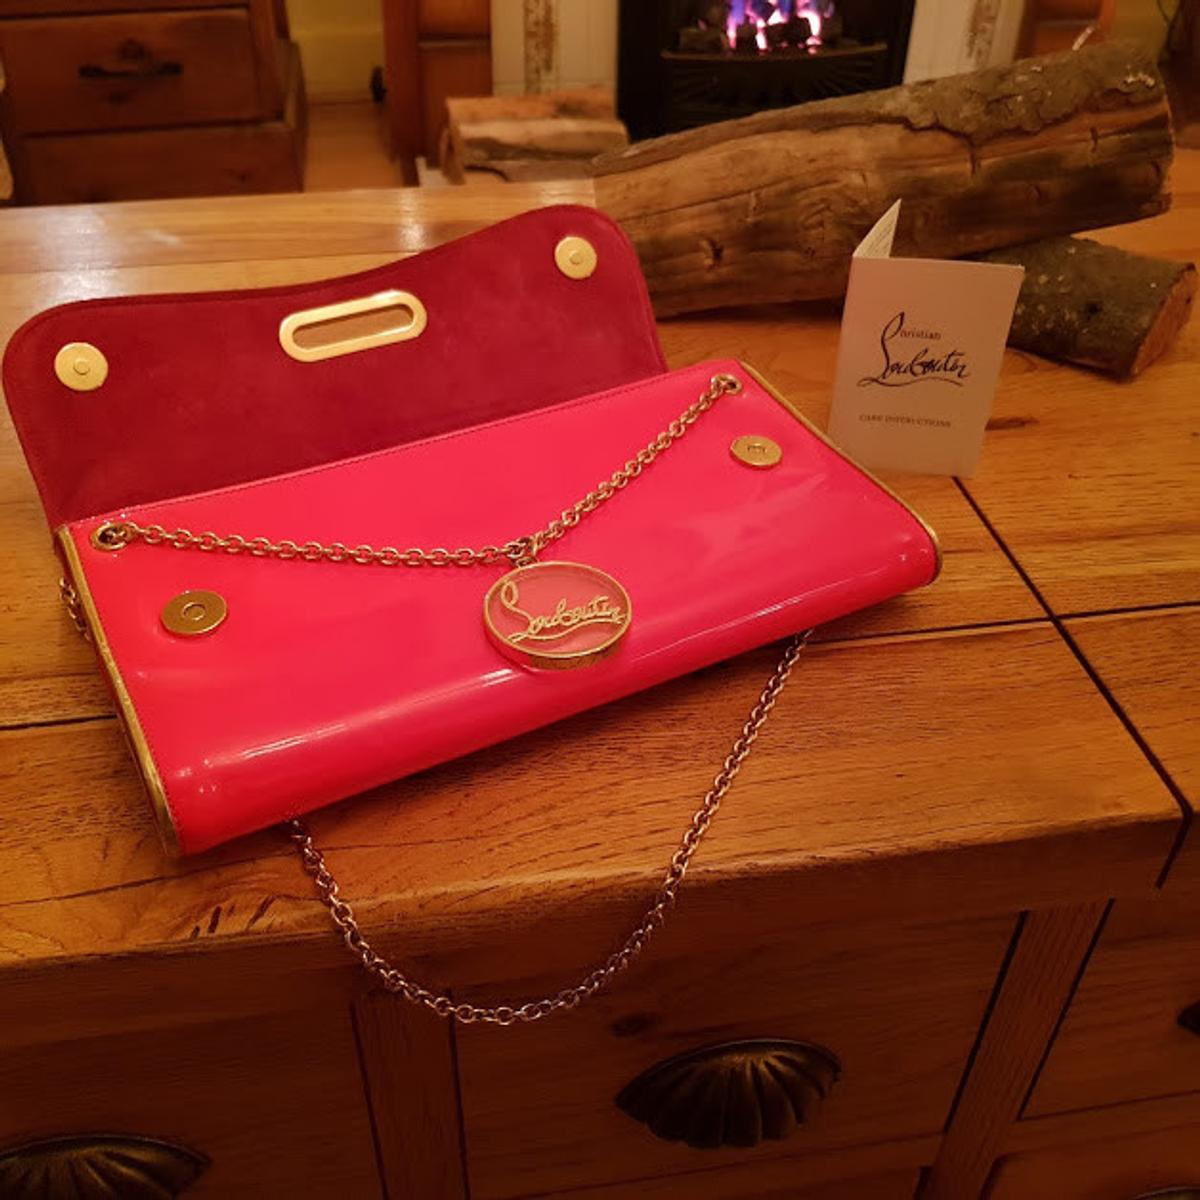 9ada348adef AUTHENTIC Christian Louboutin CLUTCH in RM3 Romford for £550.00 for ...